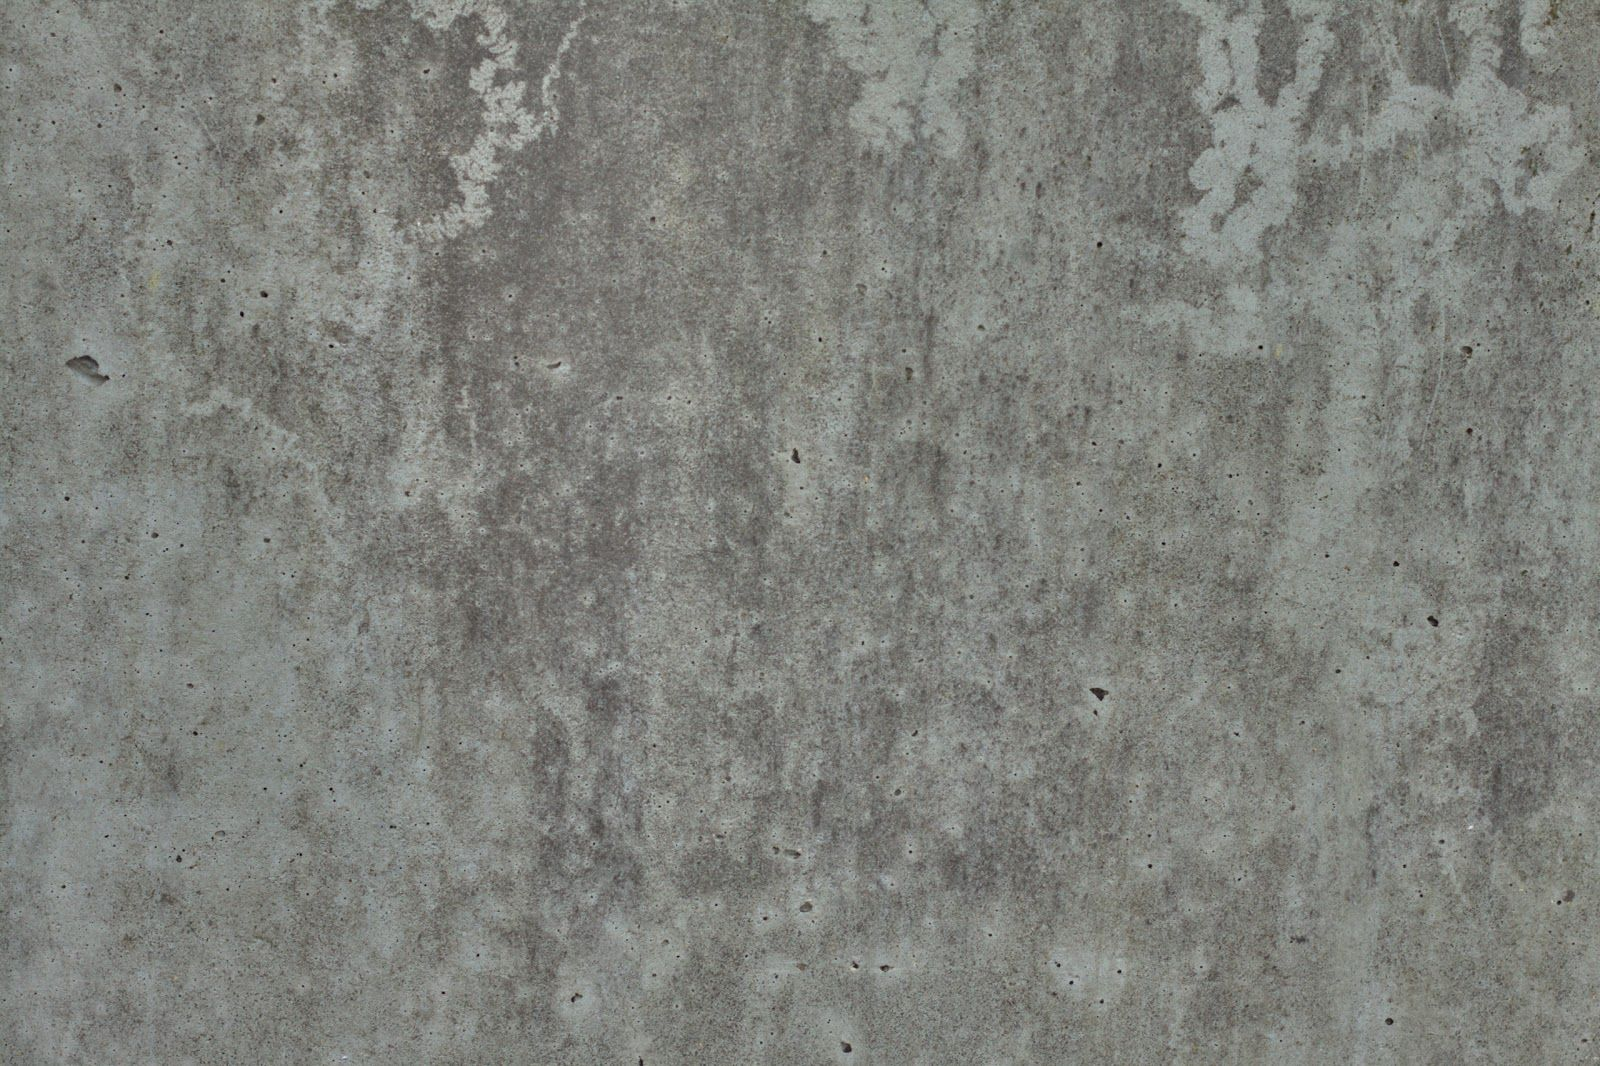 concrete floor texture, Concrete wall smooth pillar texture Concrete wall